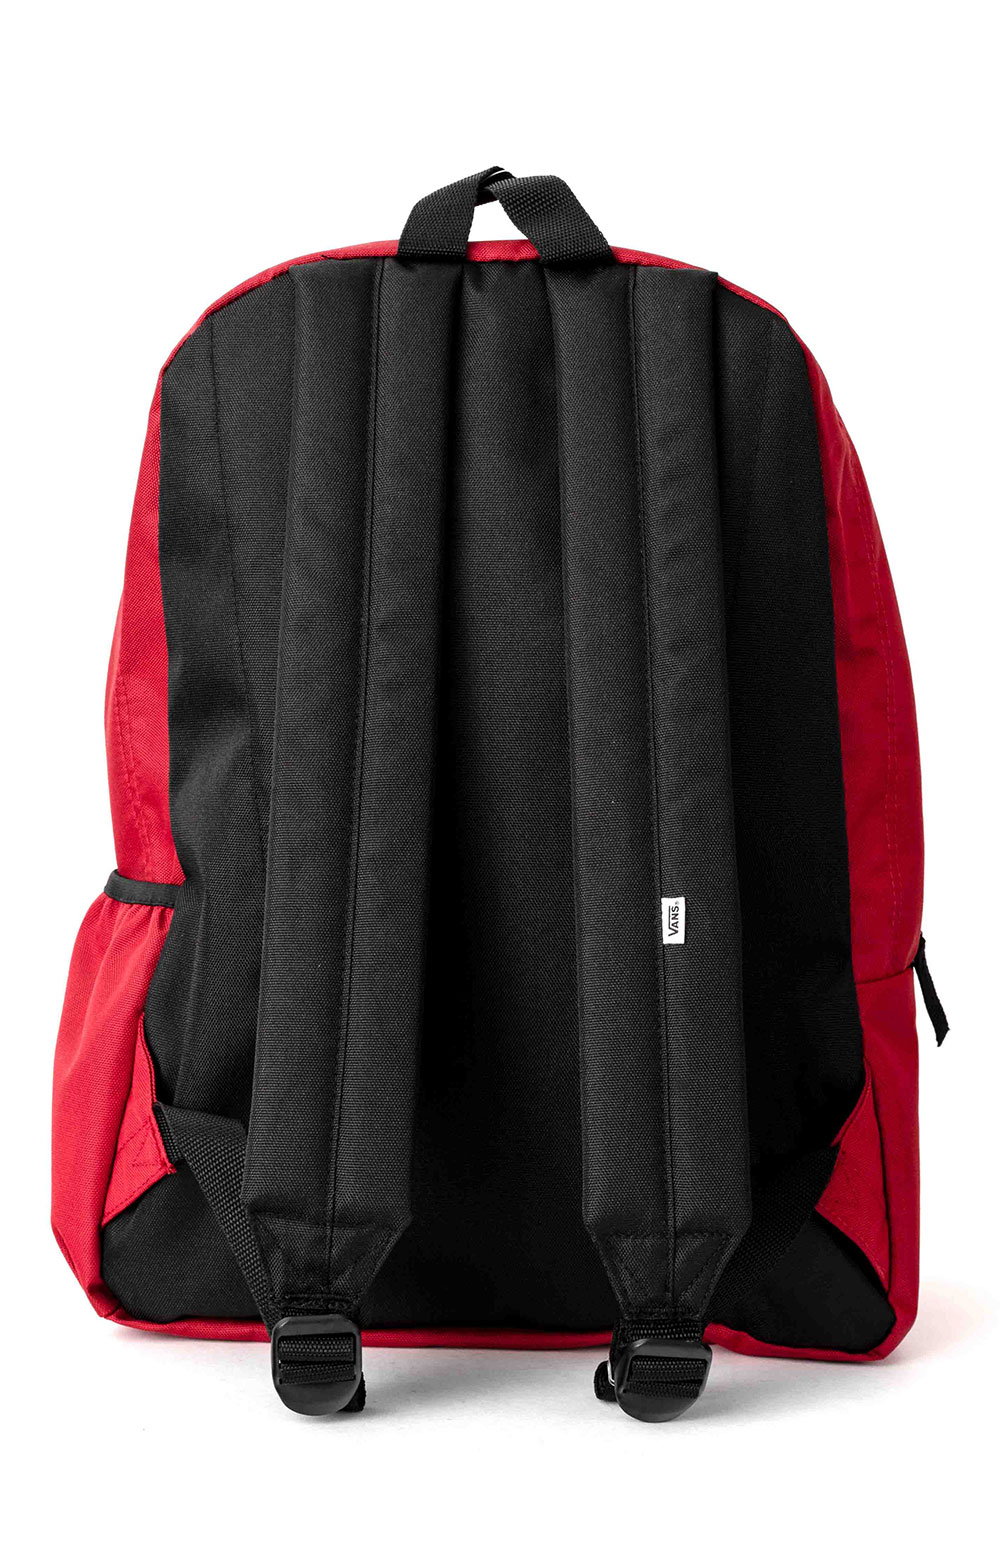 Street Sport Realm Iridescent Backpack - Chili Pepper  3